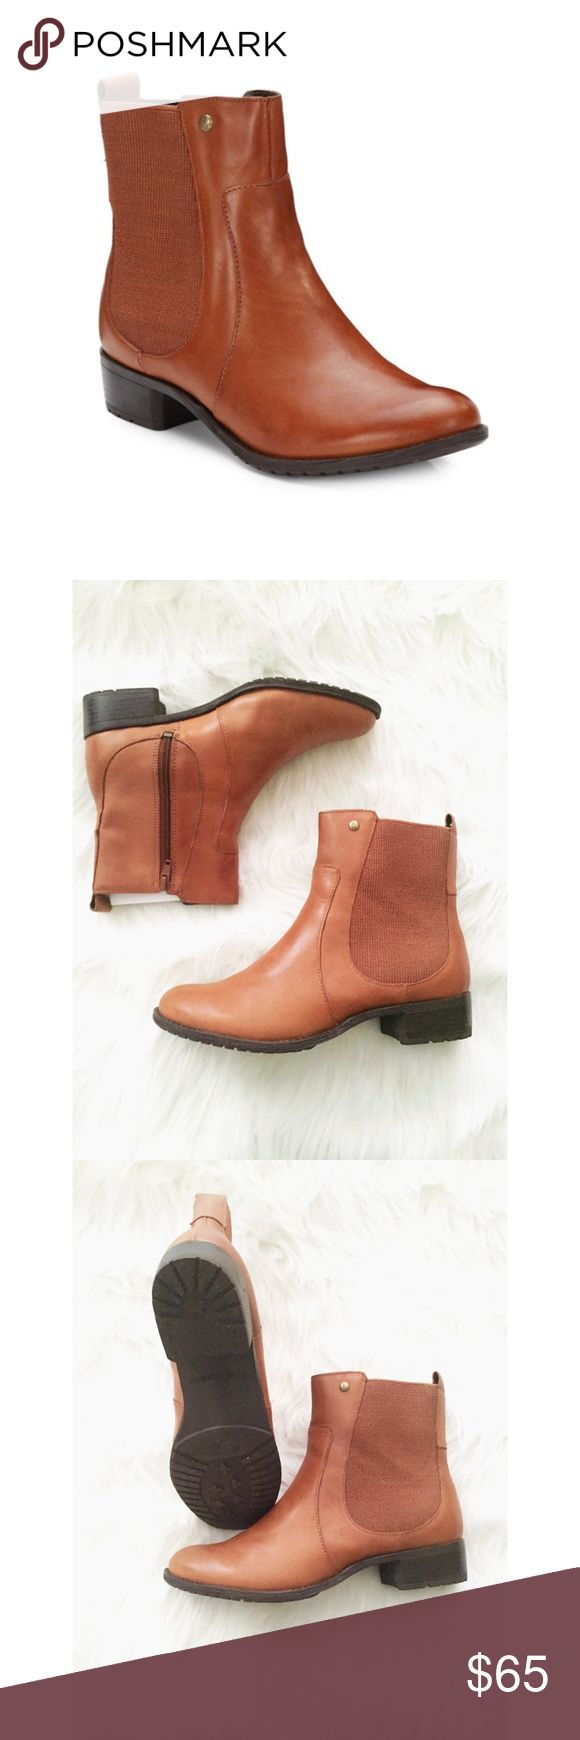 Lana Leather Chelsea Boot Leather Chelsea Boot. Worn once. No scuffs, scrapes, or rips. Worn once. Size 8 wide Hush Puppies Shoes Ankle Boots & Booties